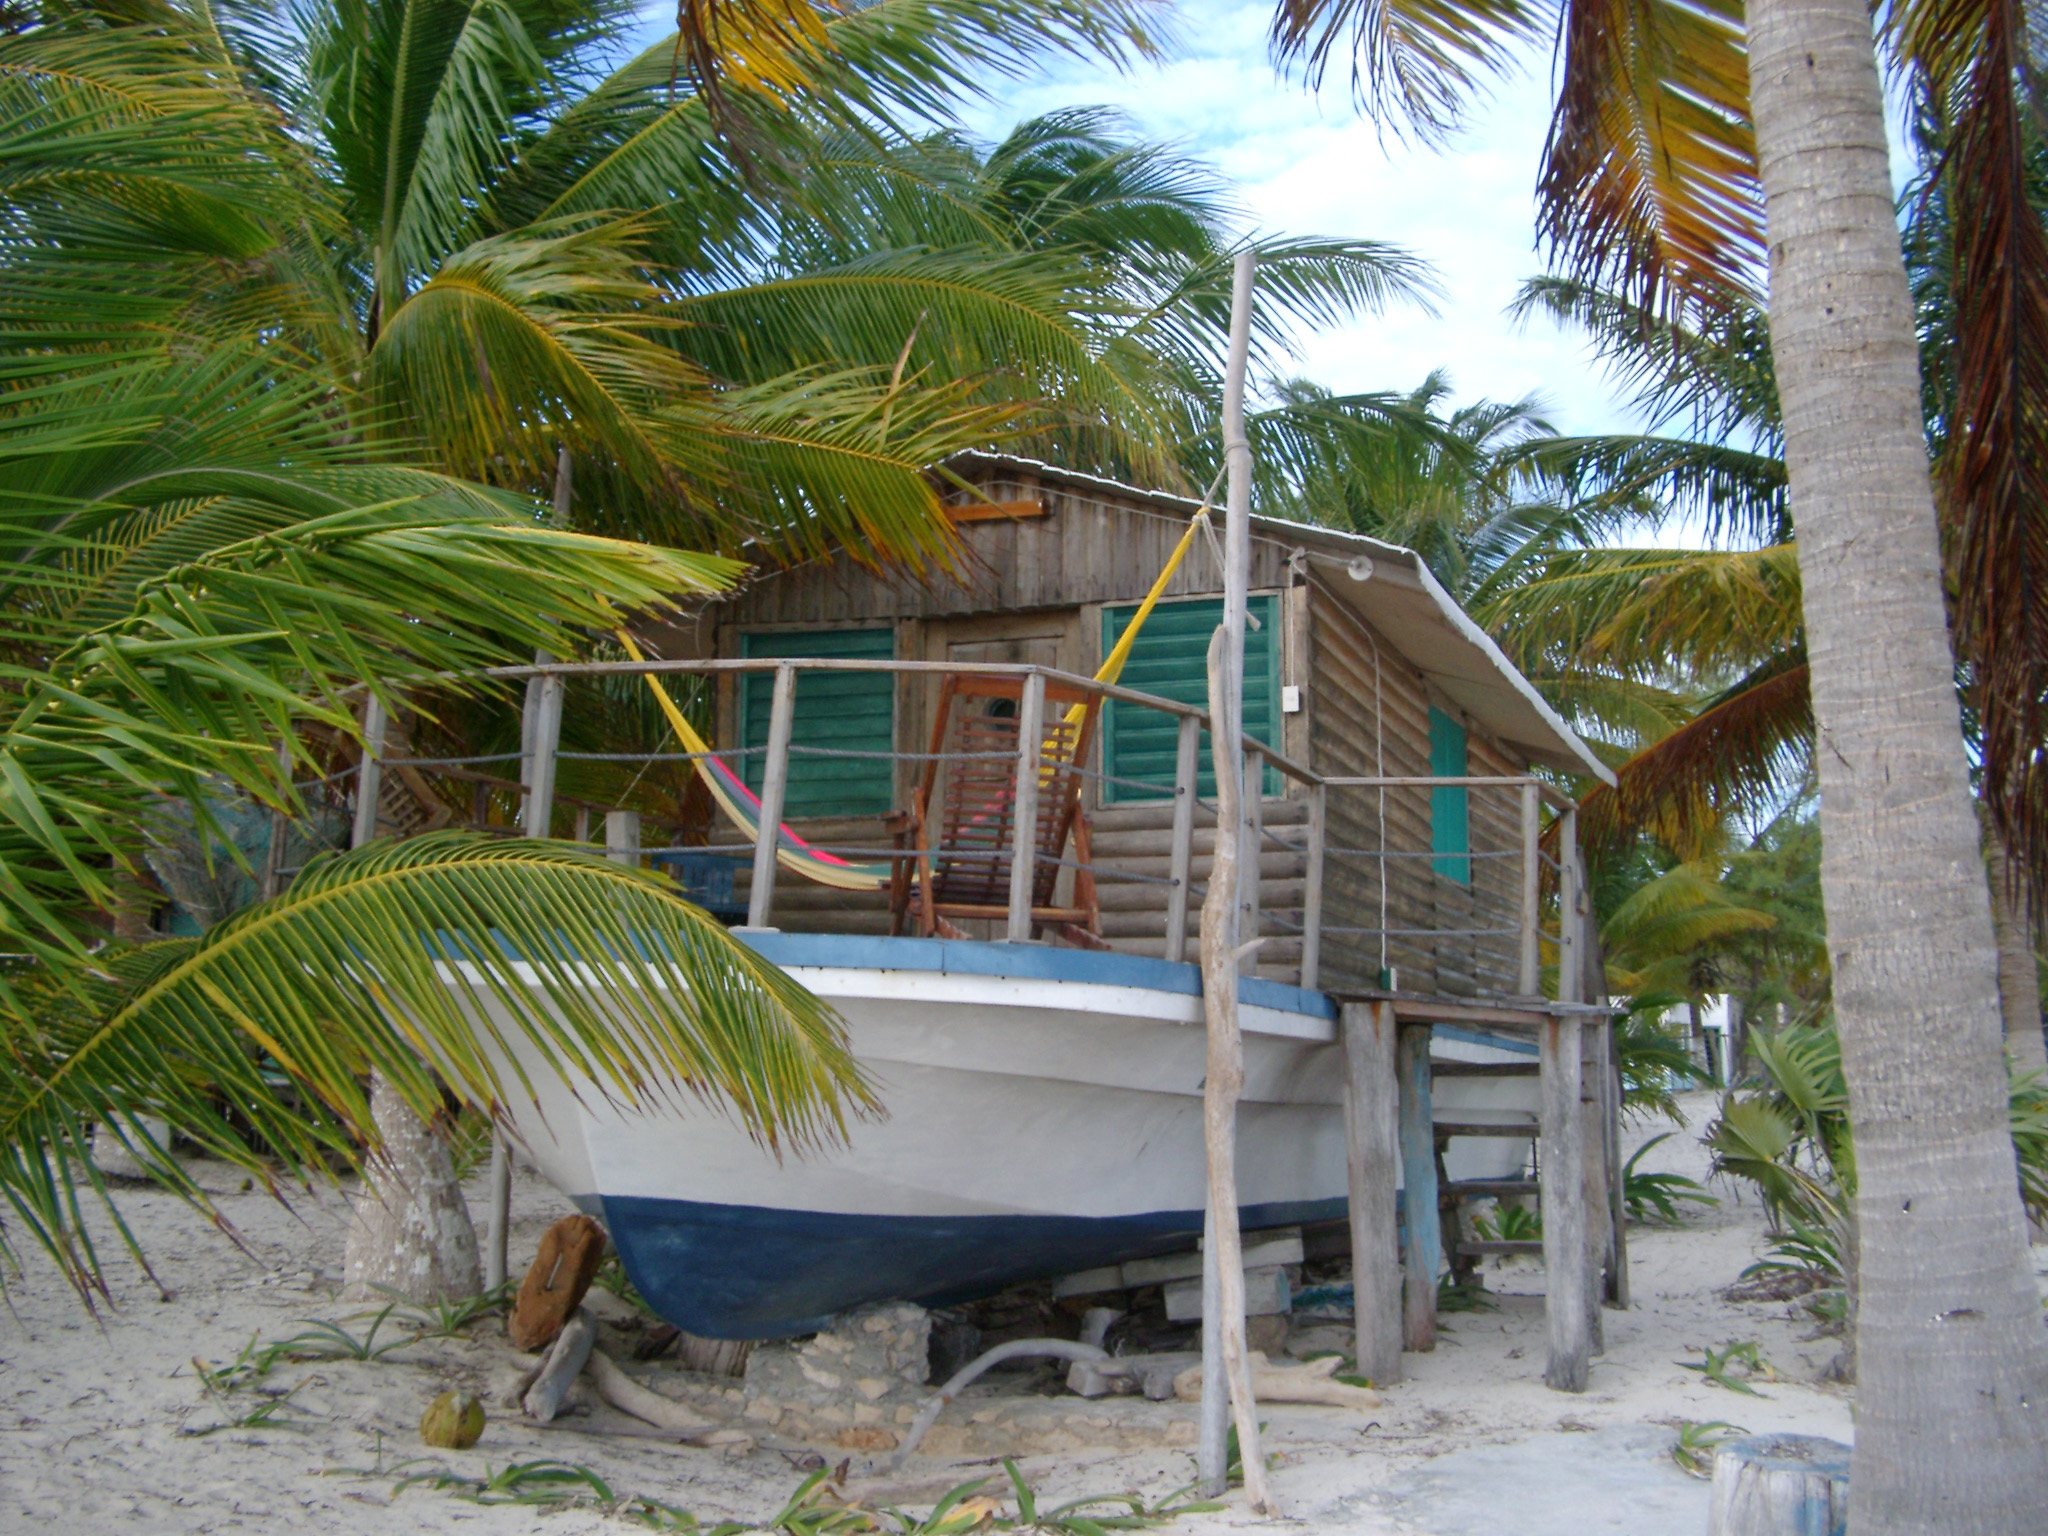 Wooden log cabin houseboat in Mexico sited on the golden sand of a tropical beach amidst palm trees